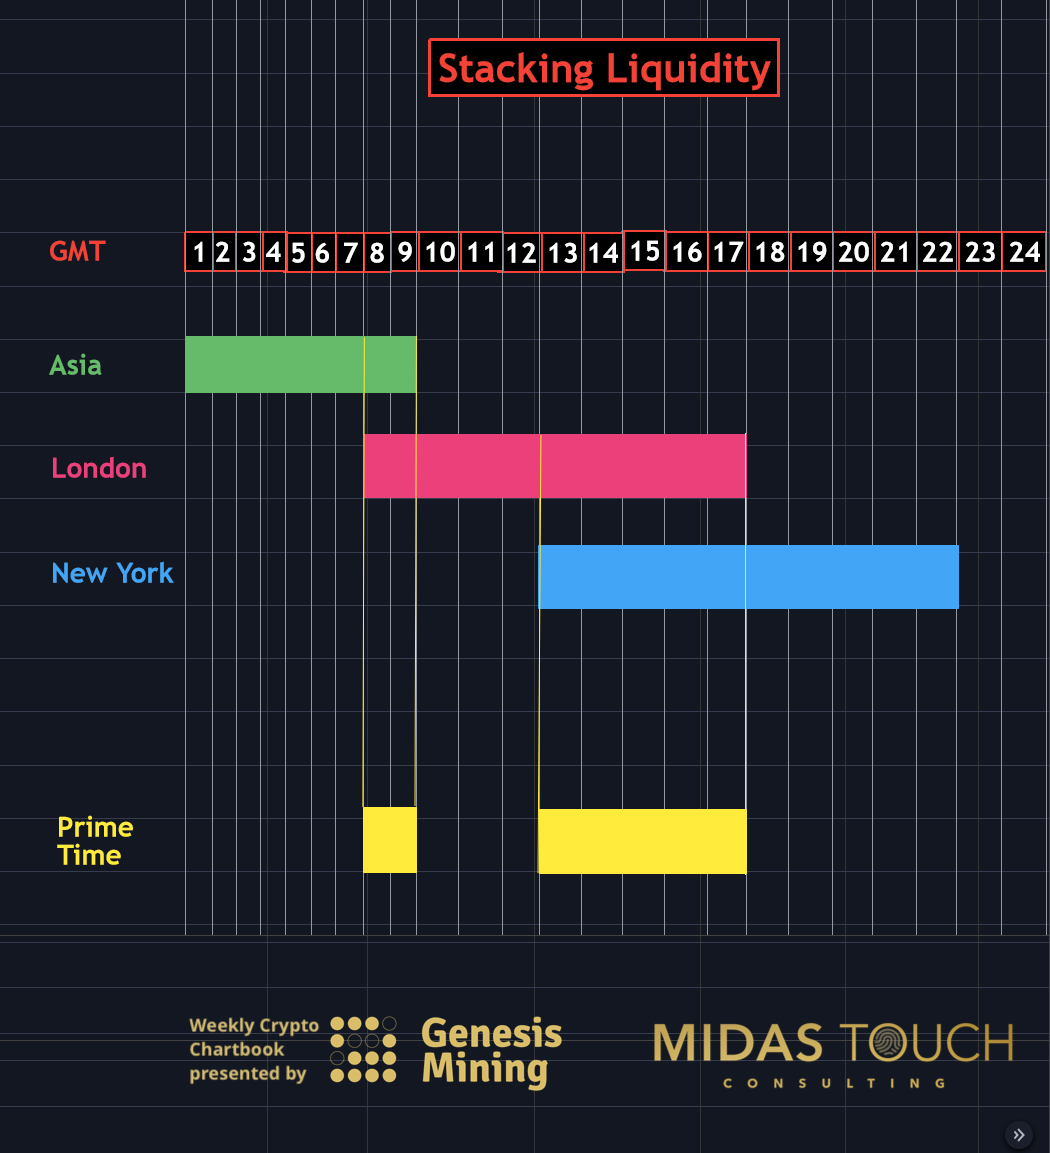 Stacking Liquidity, GMT daily chart as of March 15th, 2021